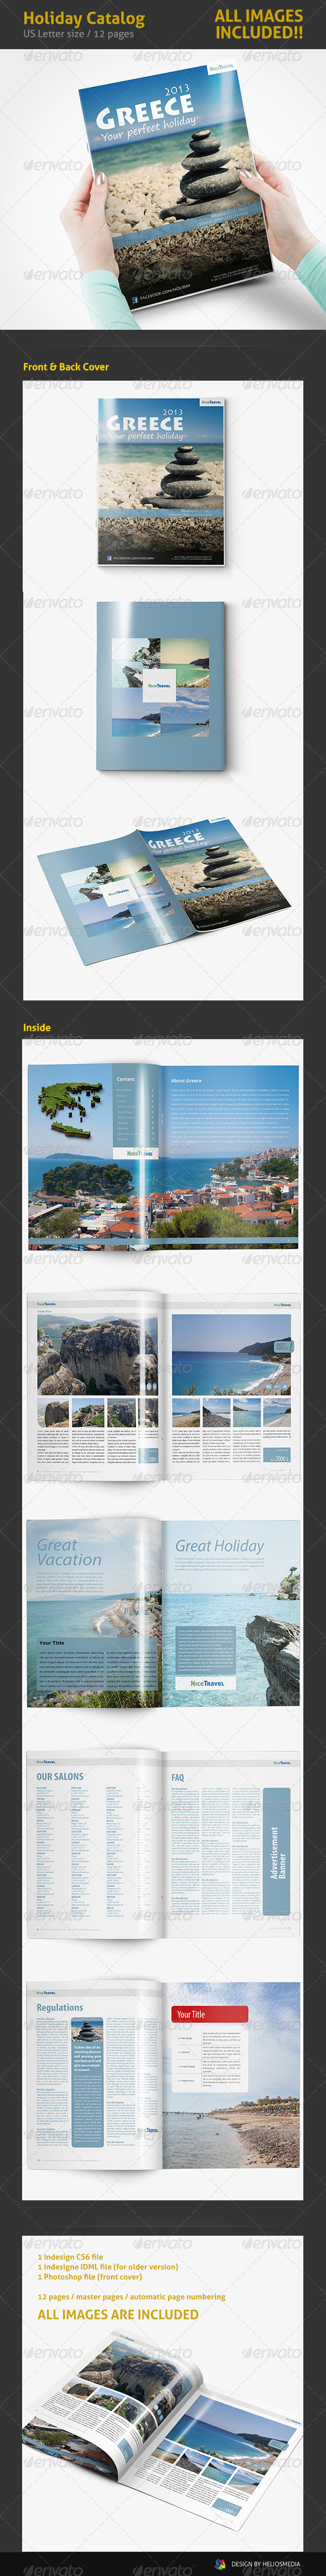 Travel Holiday Catalog - Catalogs Brochures